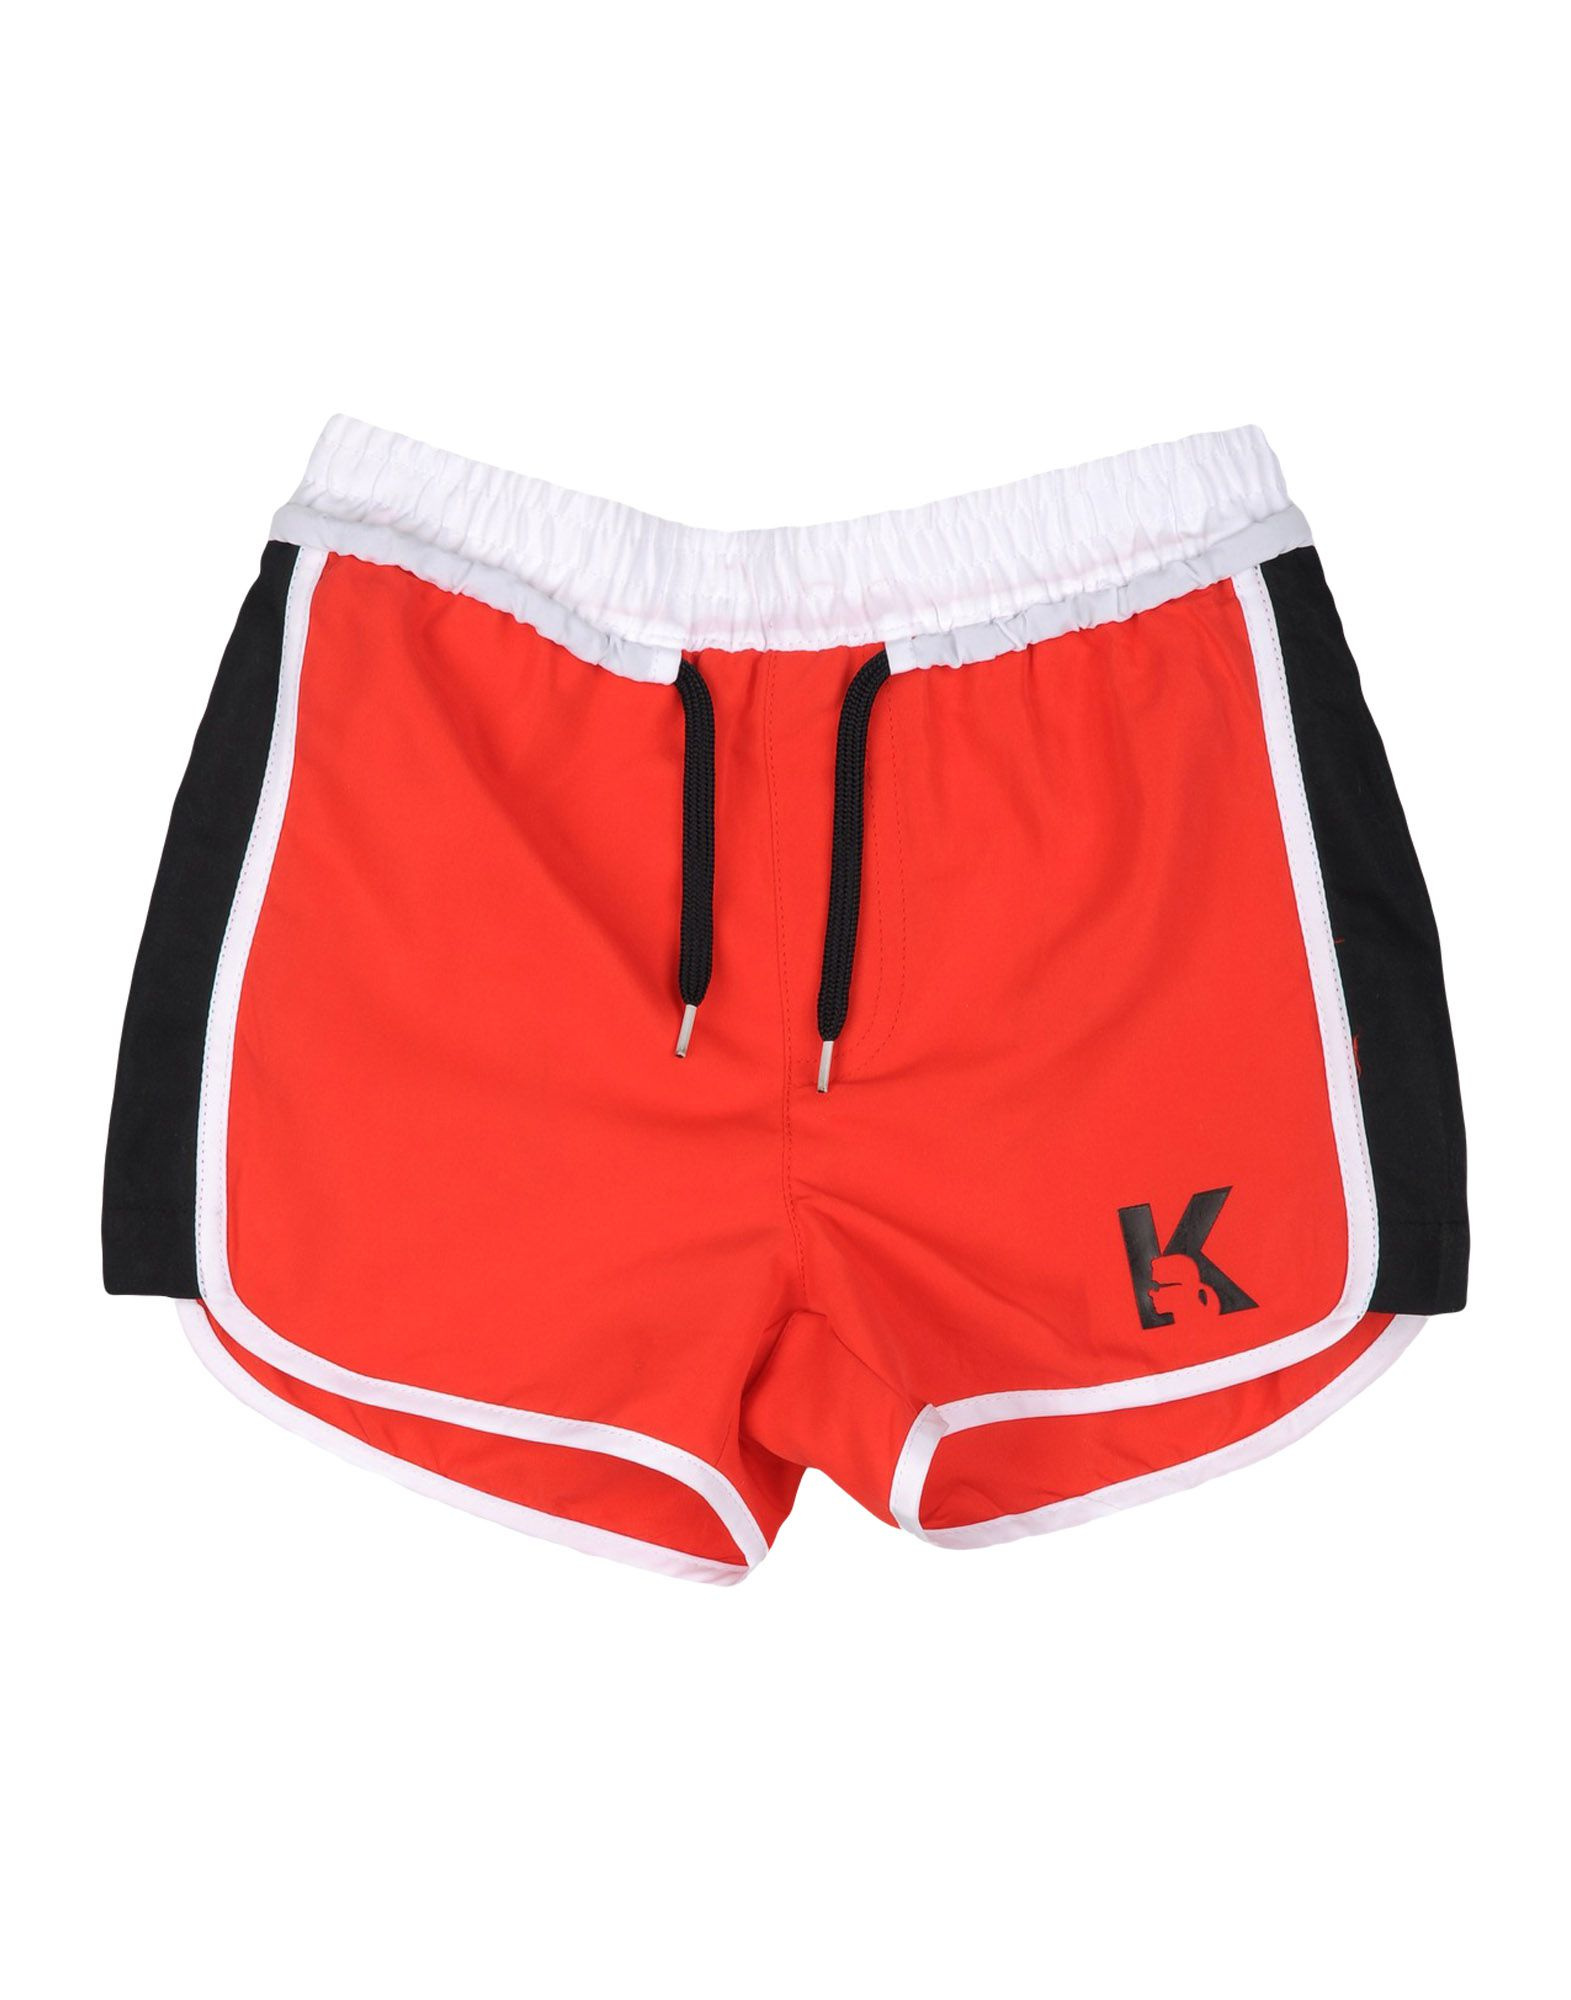 KARL LAGERFELD Swim trunks